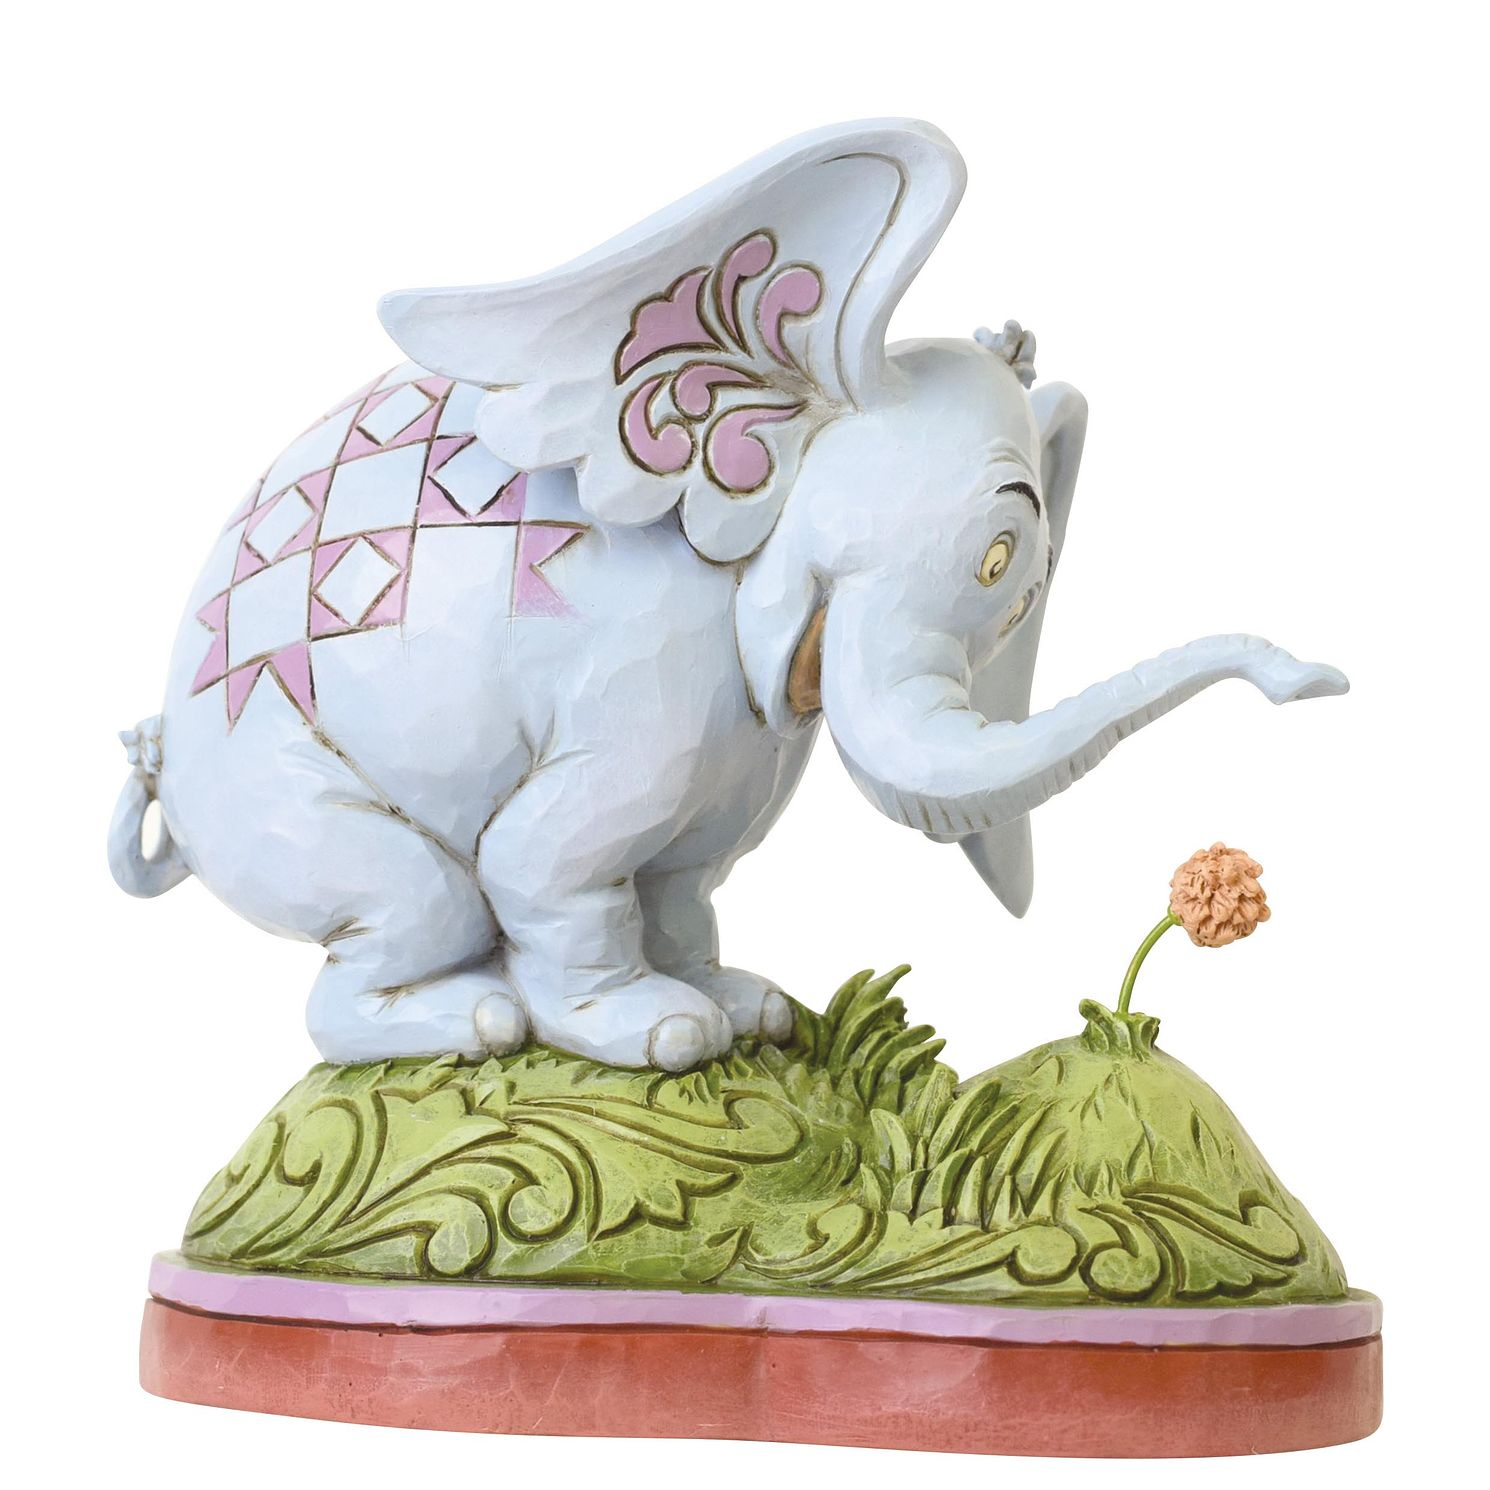 Dr Seuss Horton Hears A Who Figurine - Product number 8418659